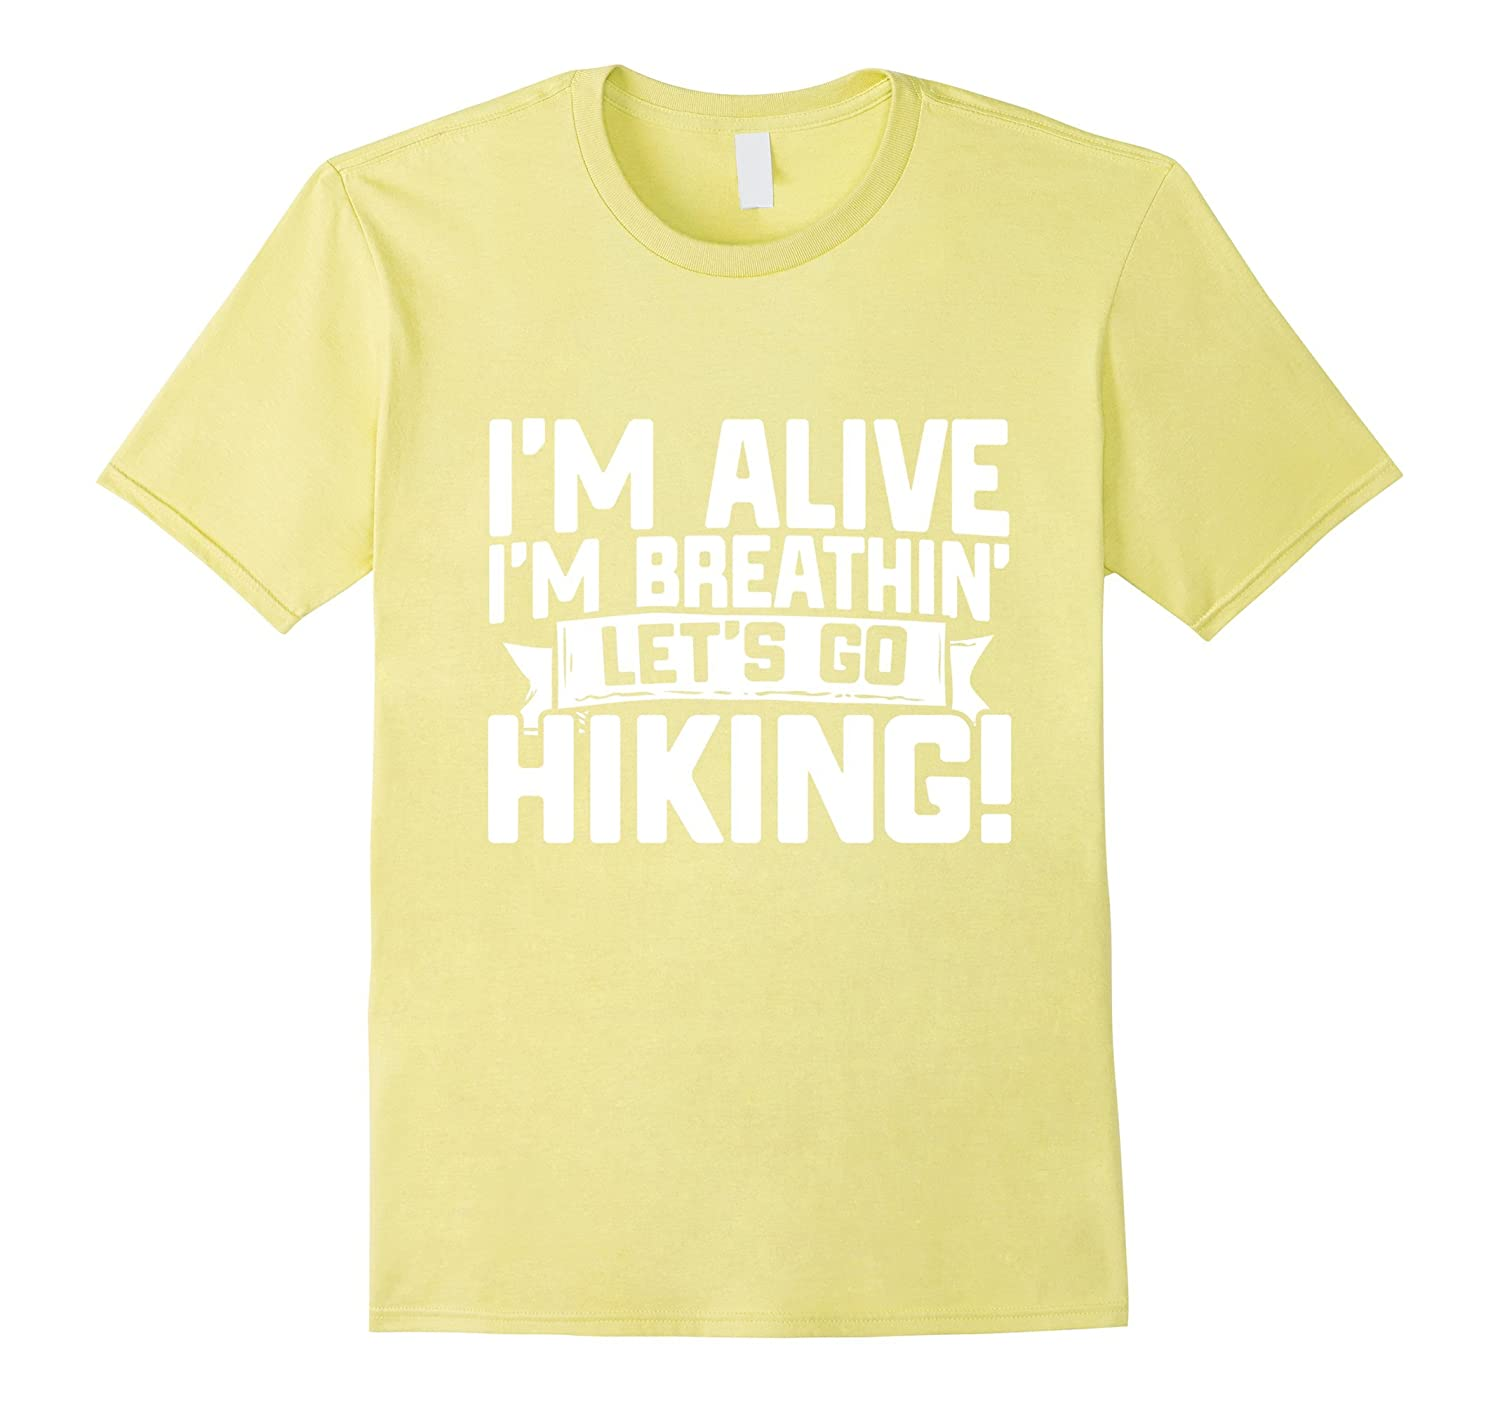 fa0c107396fd Funny Hiking Shirt Im Alive Im Breathing Lets Go Hiking – Hntee.com